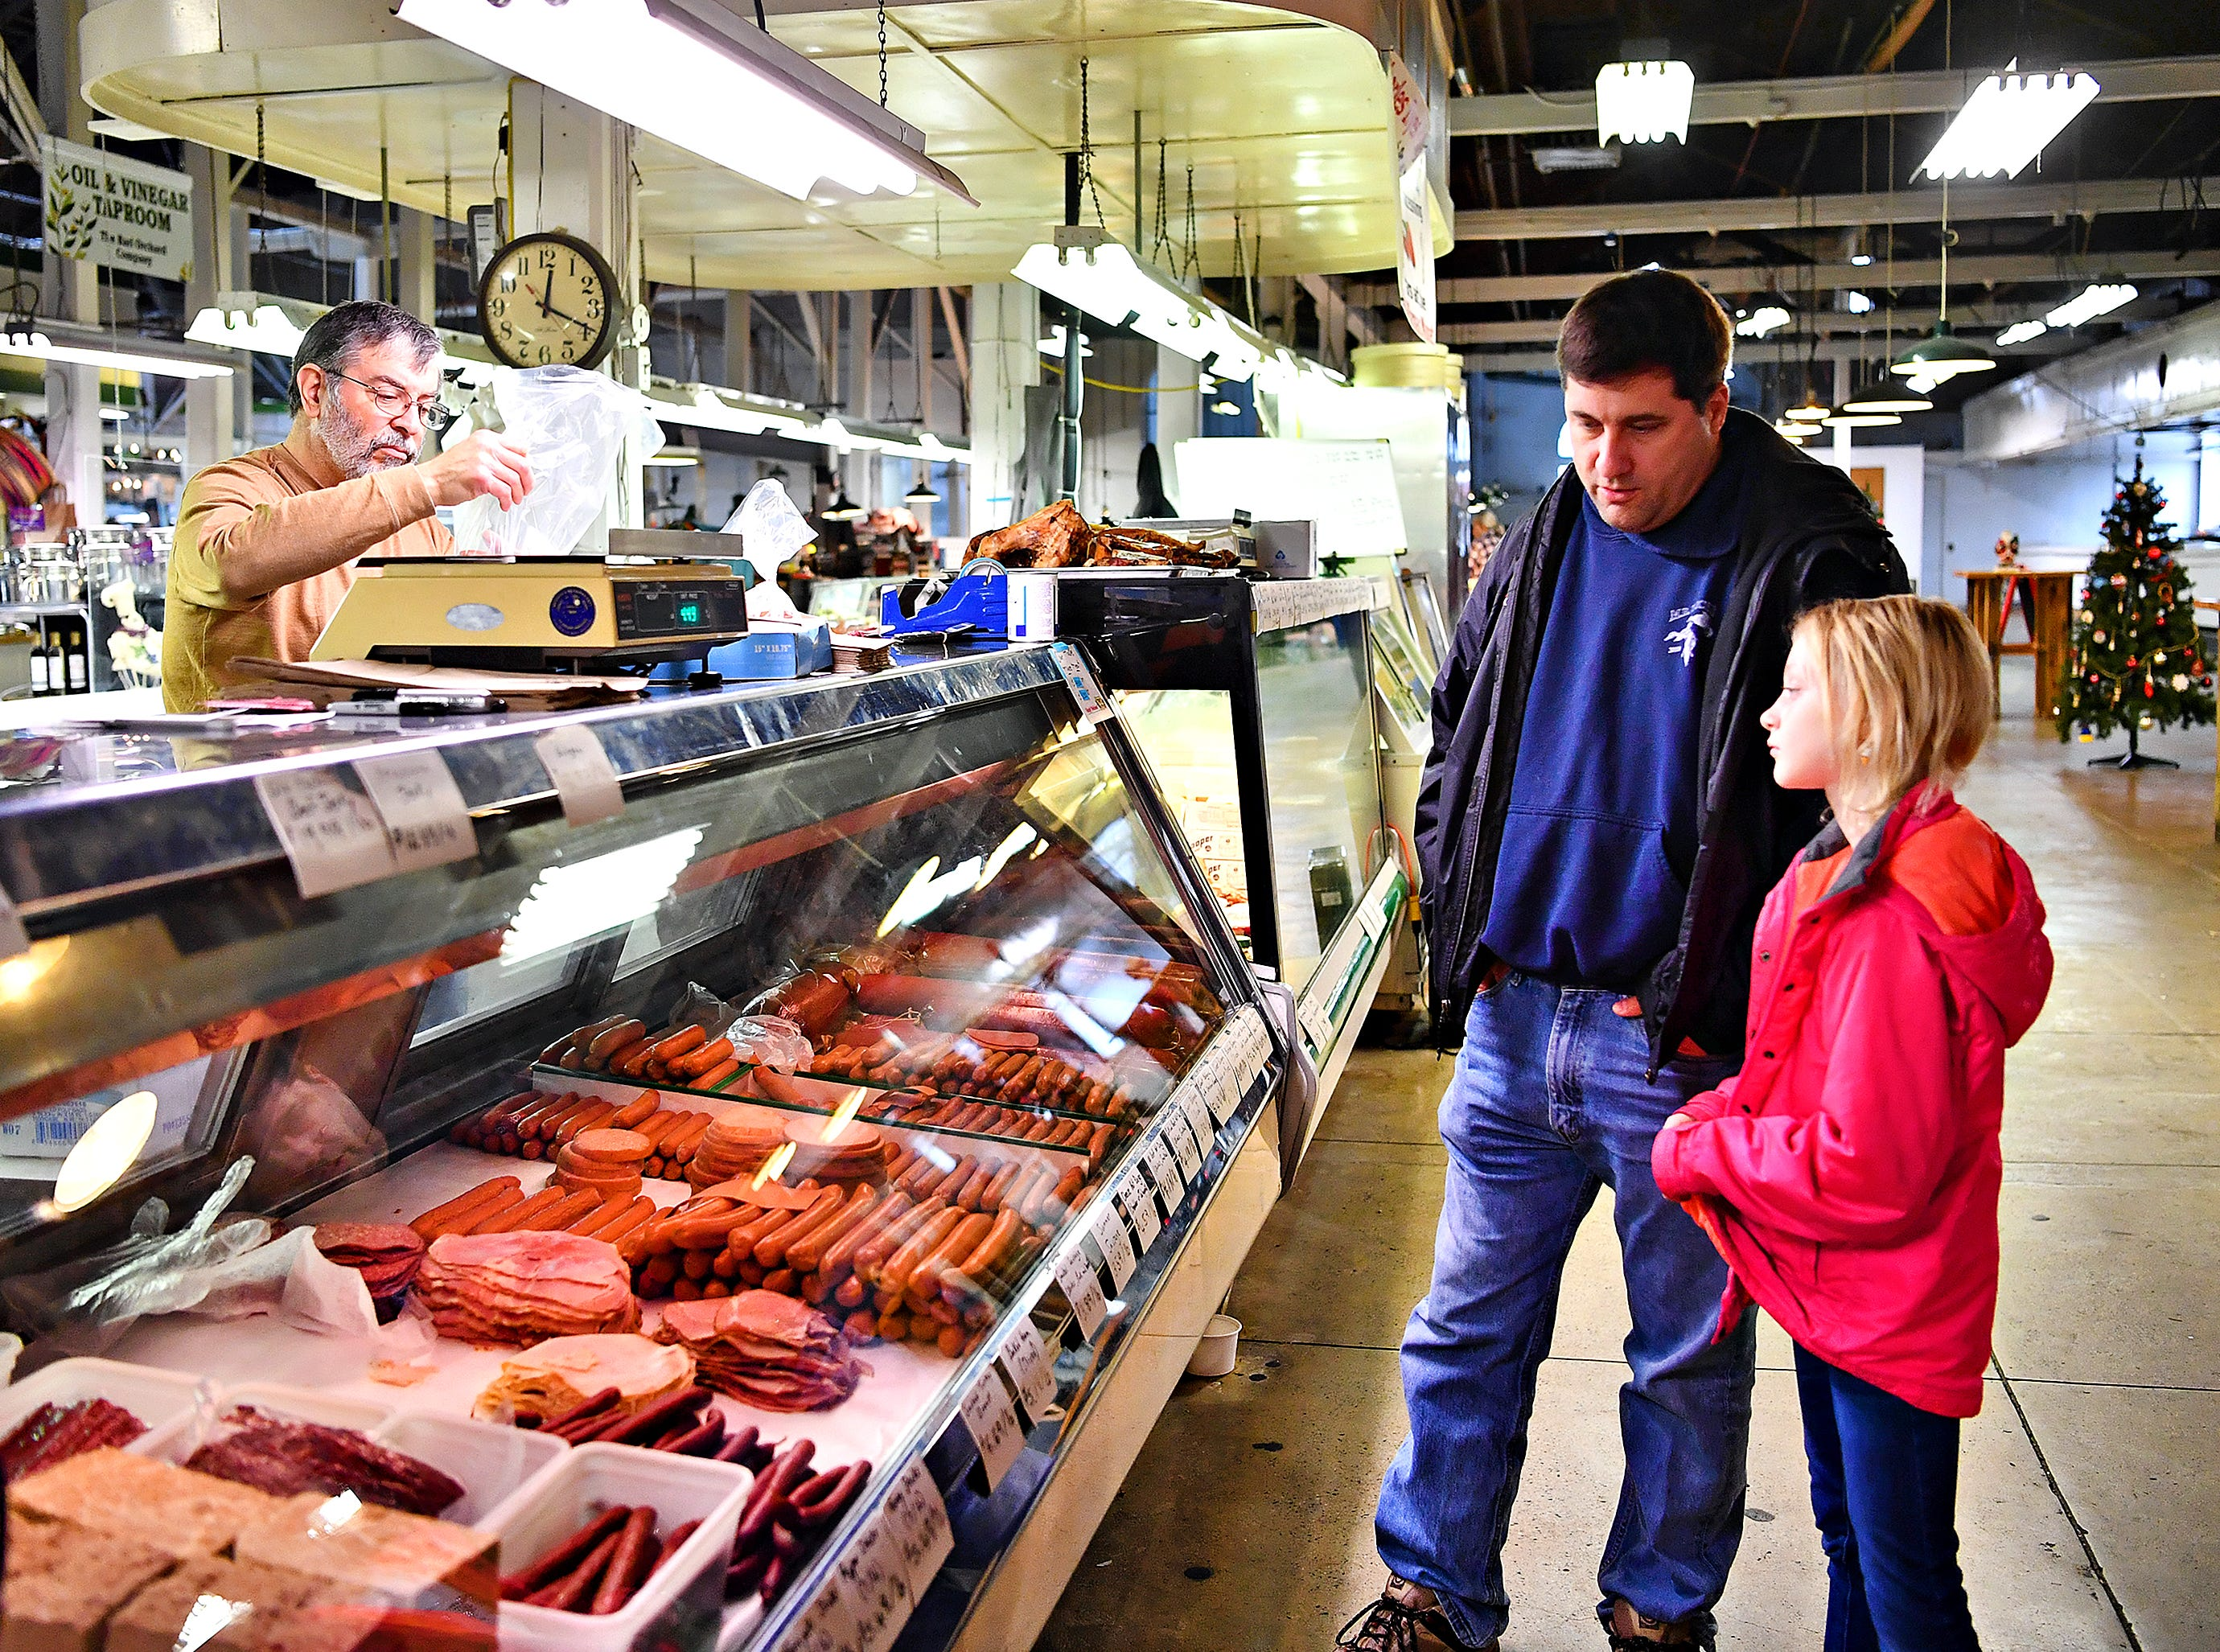 From right, Kearsea Godfrey, 9, and her father Chad Godfrey wait while Matthew Folgleman, of Charles Ilyes Family, Inc., Meats and Produce at Penn Market in York City, Friday, Dec. 28, 2018. Dawn J. Sagert photo